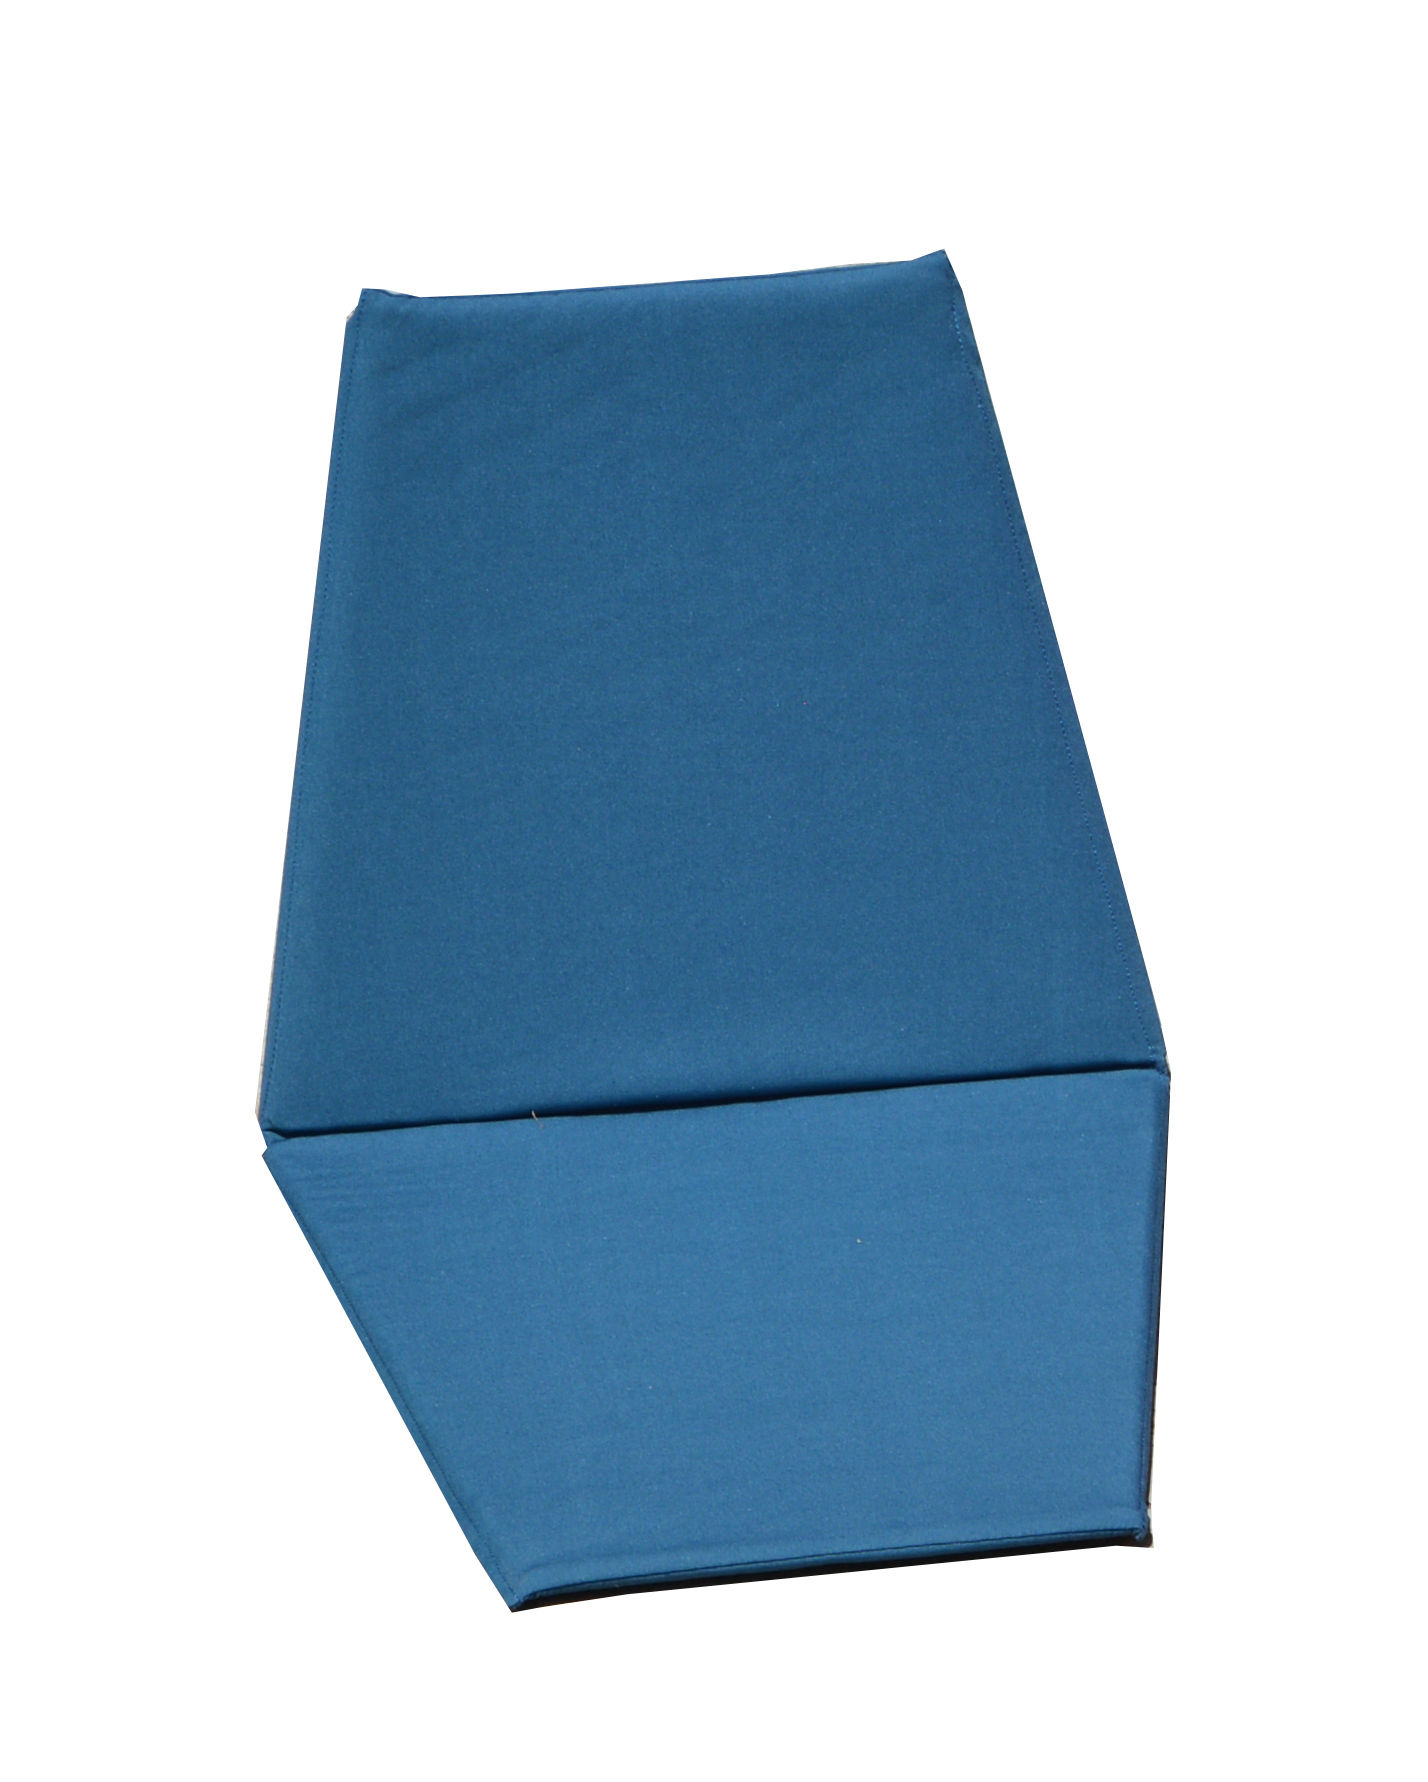 Outdoor - Poufs, Cushions & Rugs - Sego Pliable seat - / Rug by Cacoon - Blue - Polyester cloth